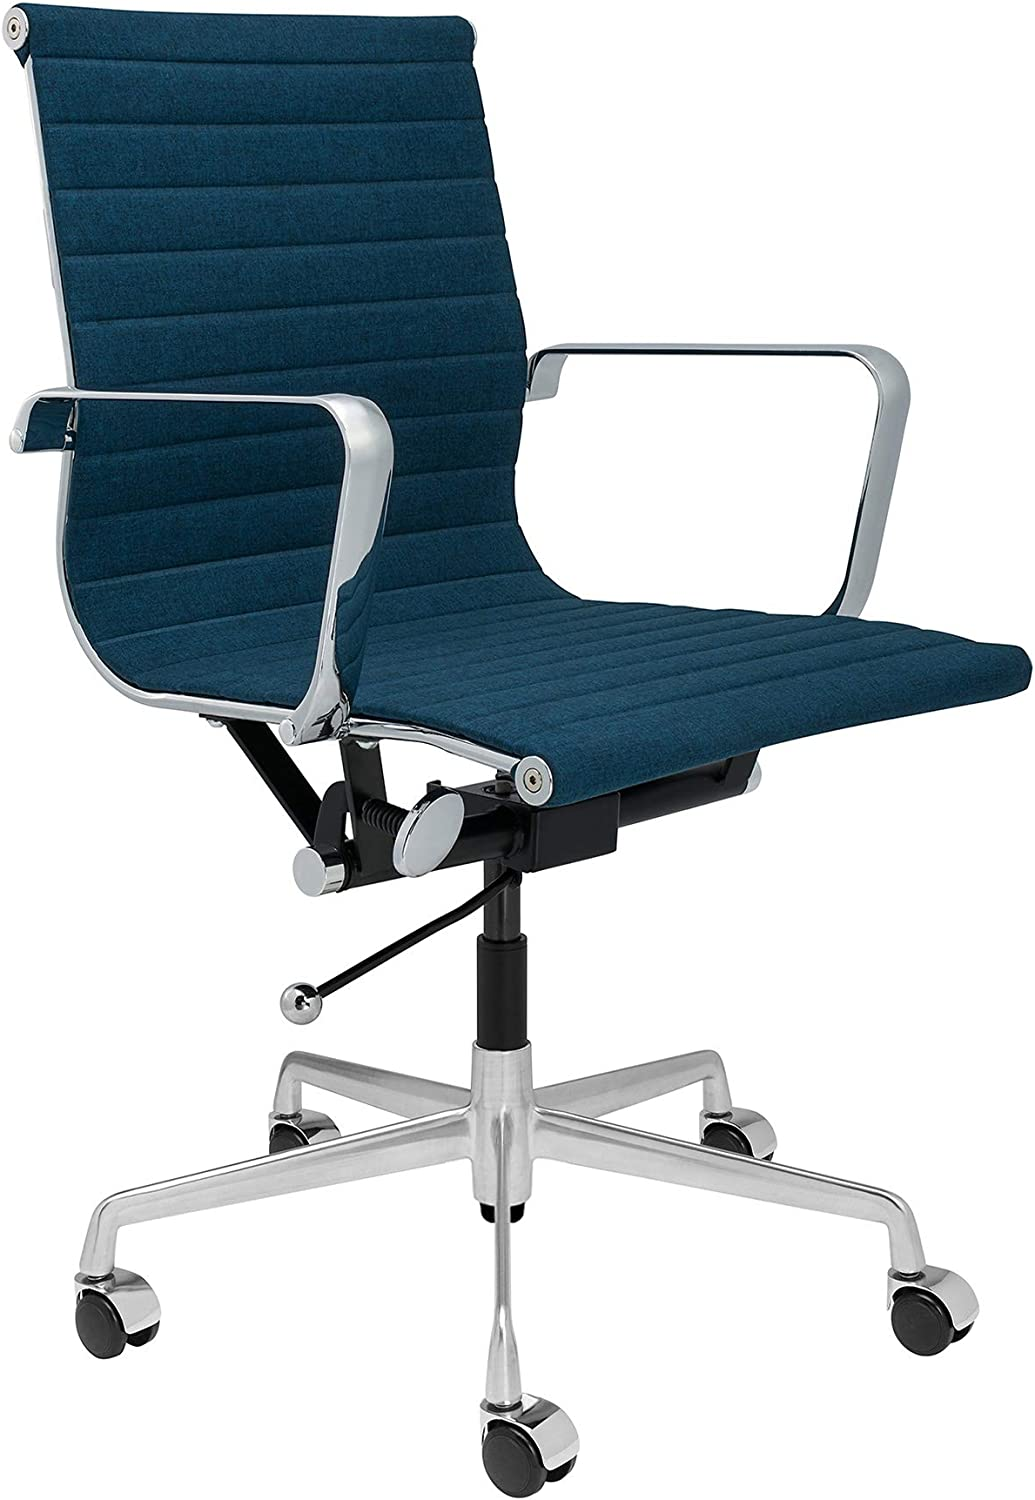 SOHO Ribbed Management Office Chair (Dark Blue Fabric)